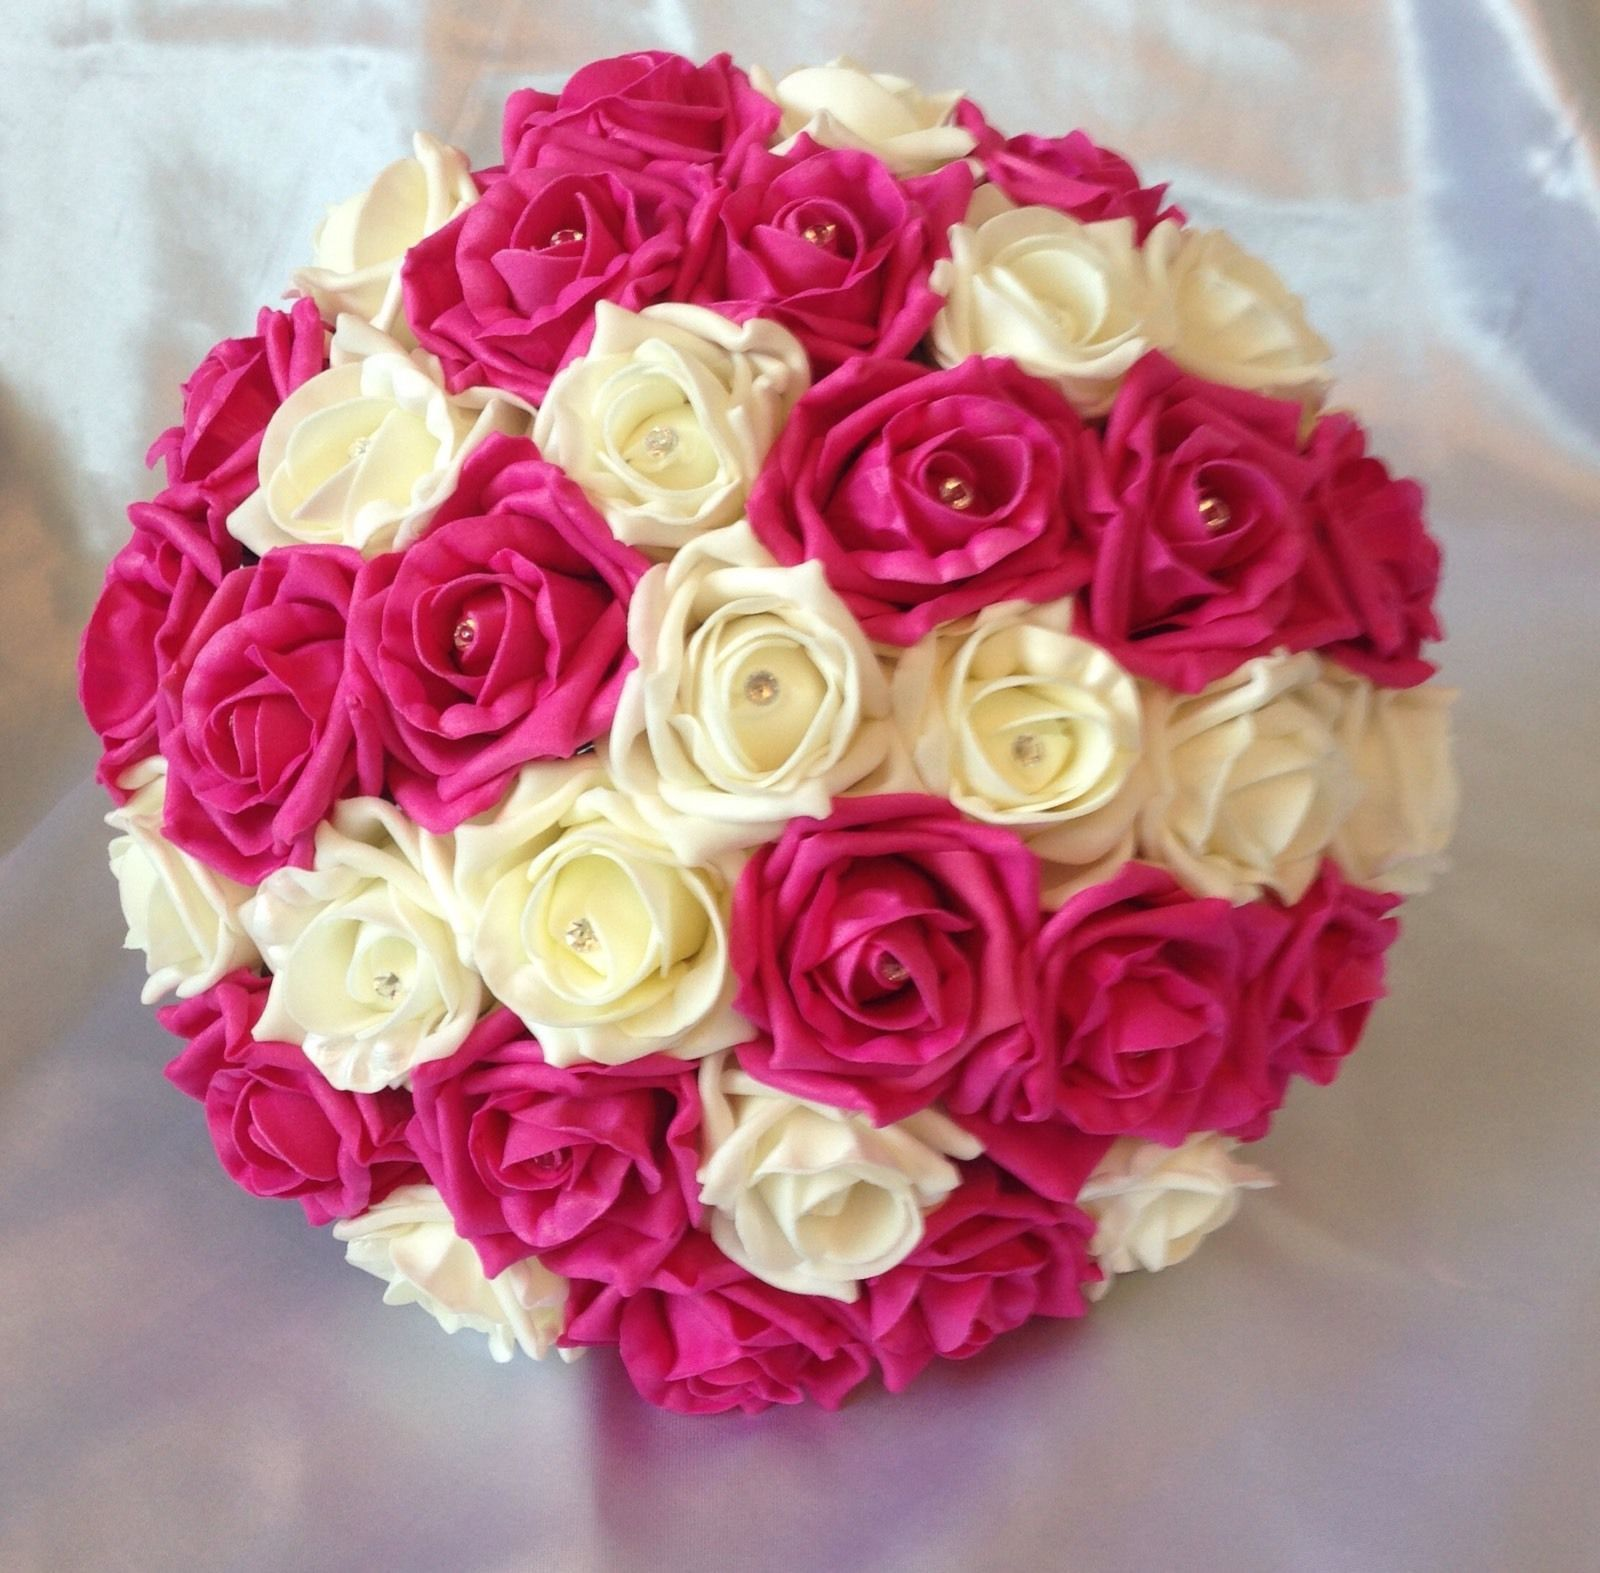 ARTIFICIAL FLOWERS HOT PINK IVORY FOAM ROSE BRIDE WEDDING ...